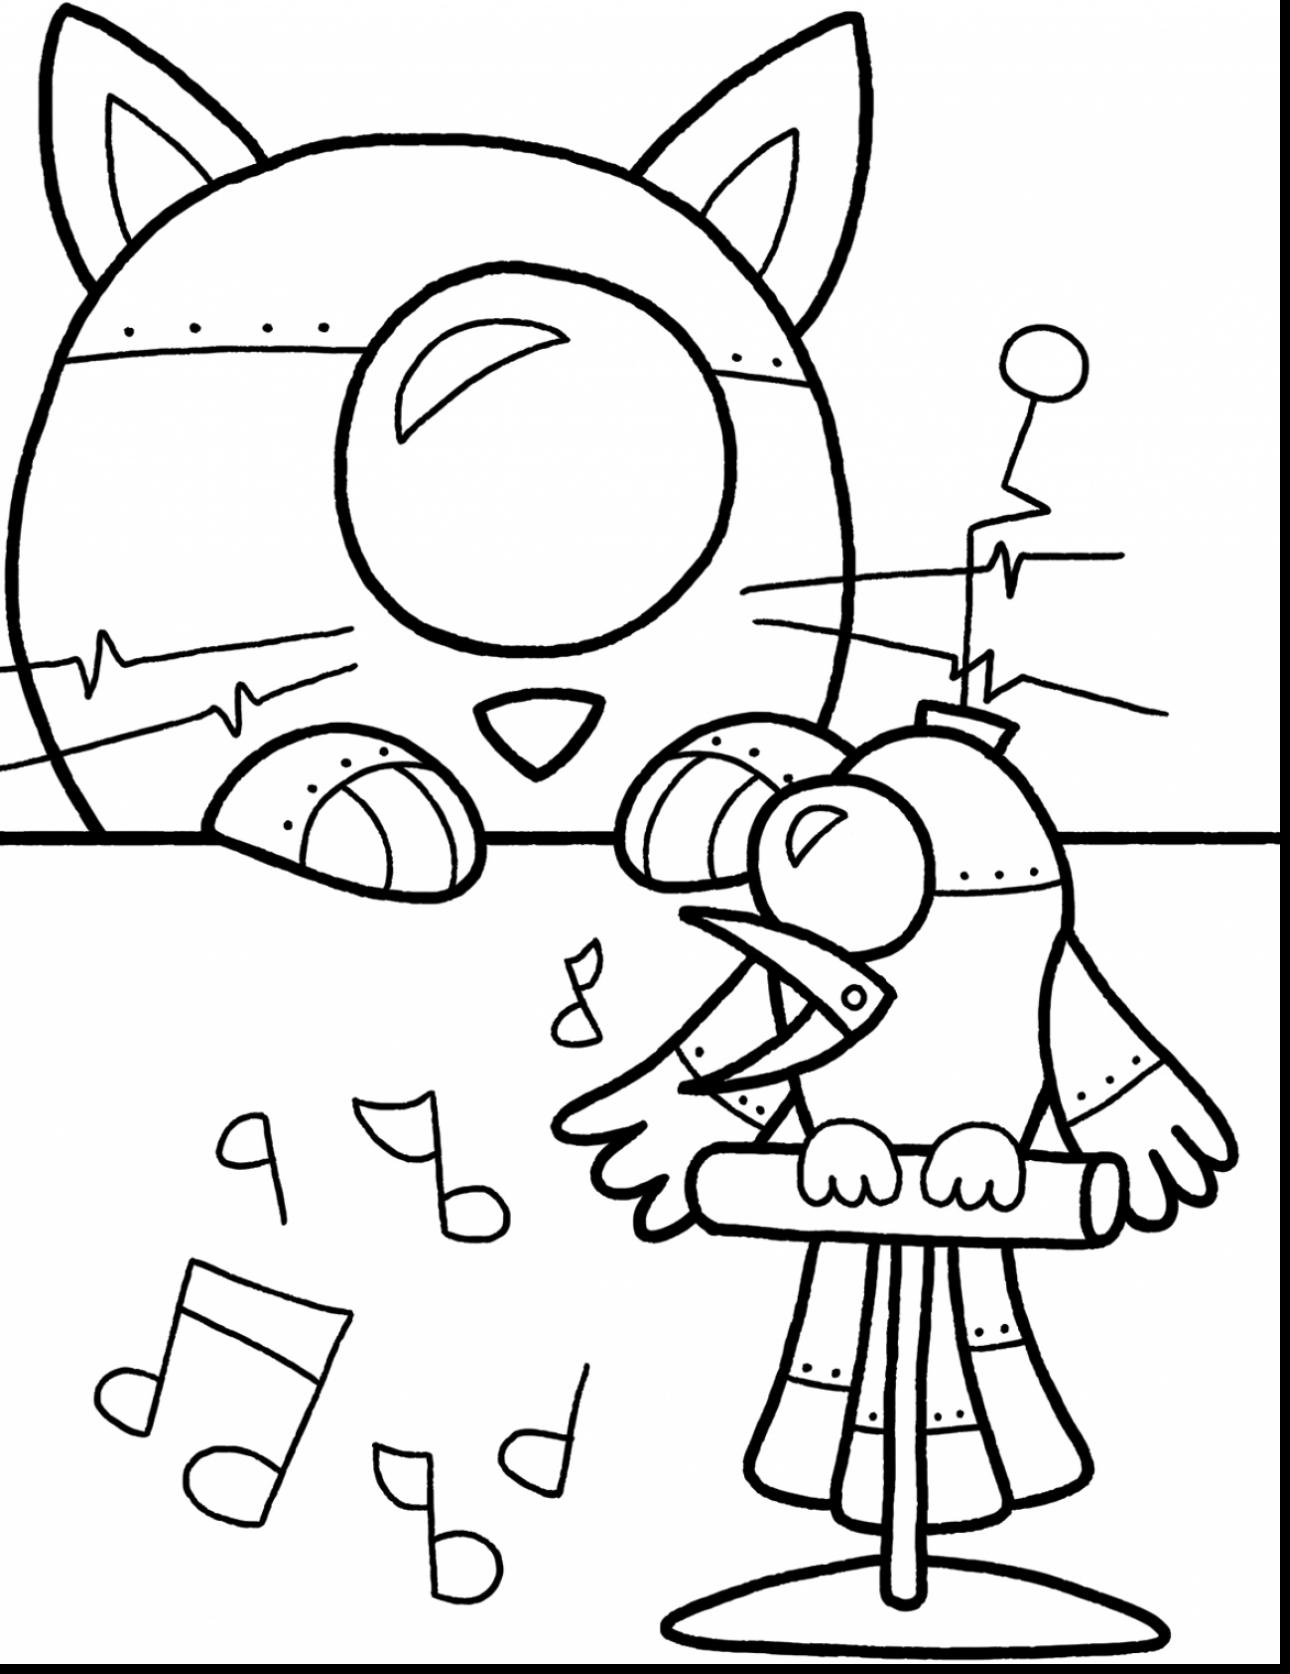 1290x1674 Wonderful Printable Robot Coloring Page With Robot Coloring Pages